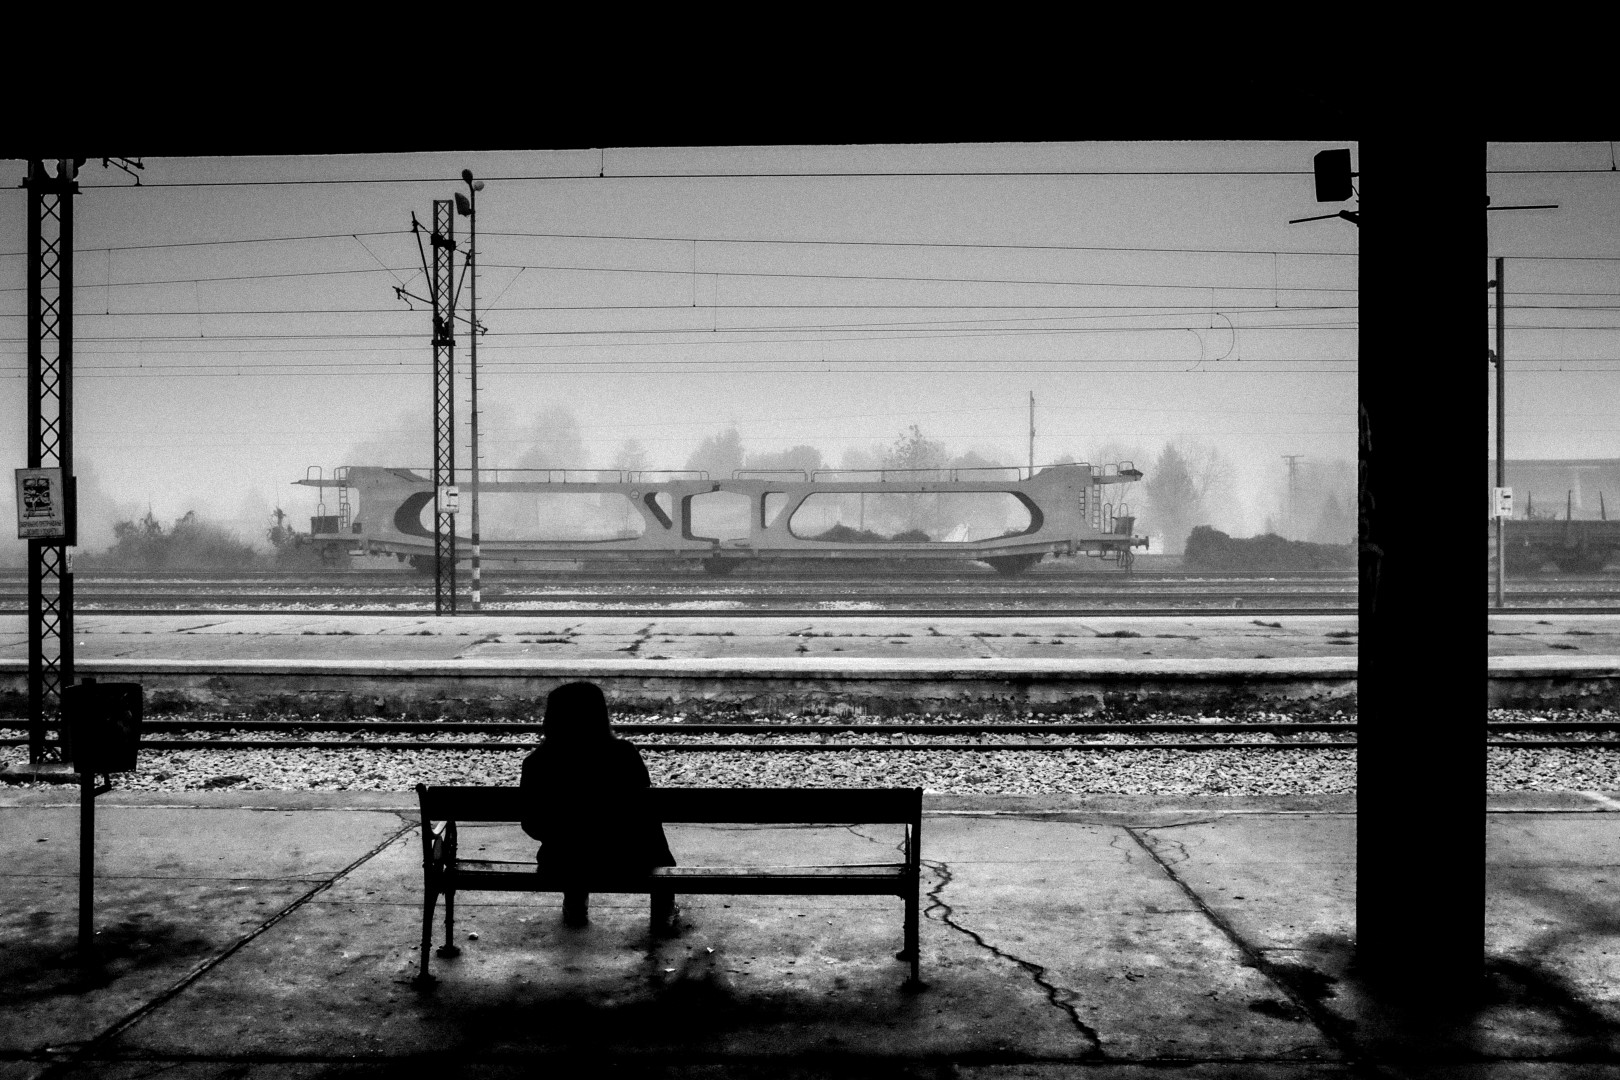 waiting-for-train-that-never-comes_23189754894_o (Large).jpg